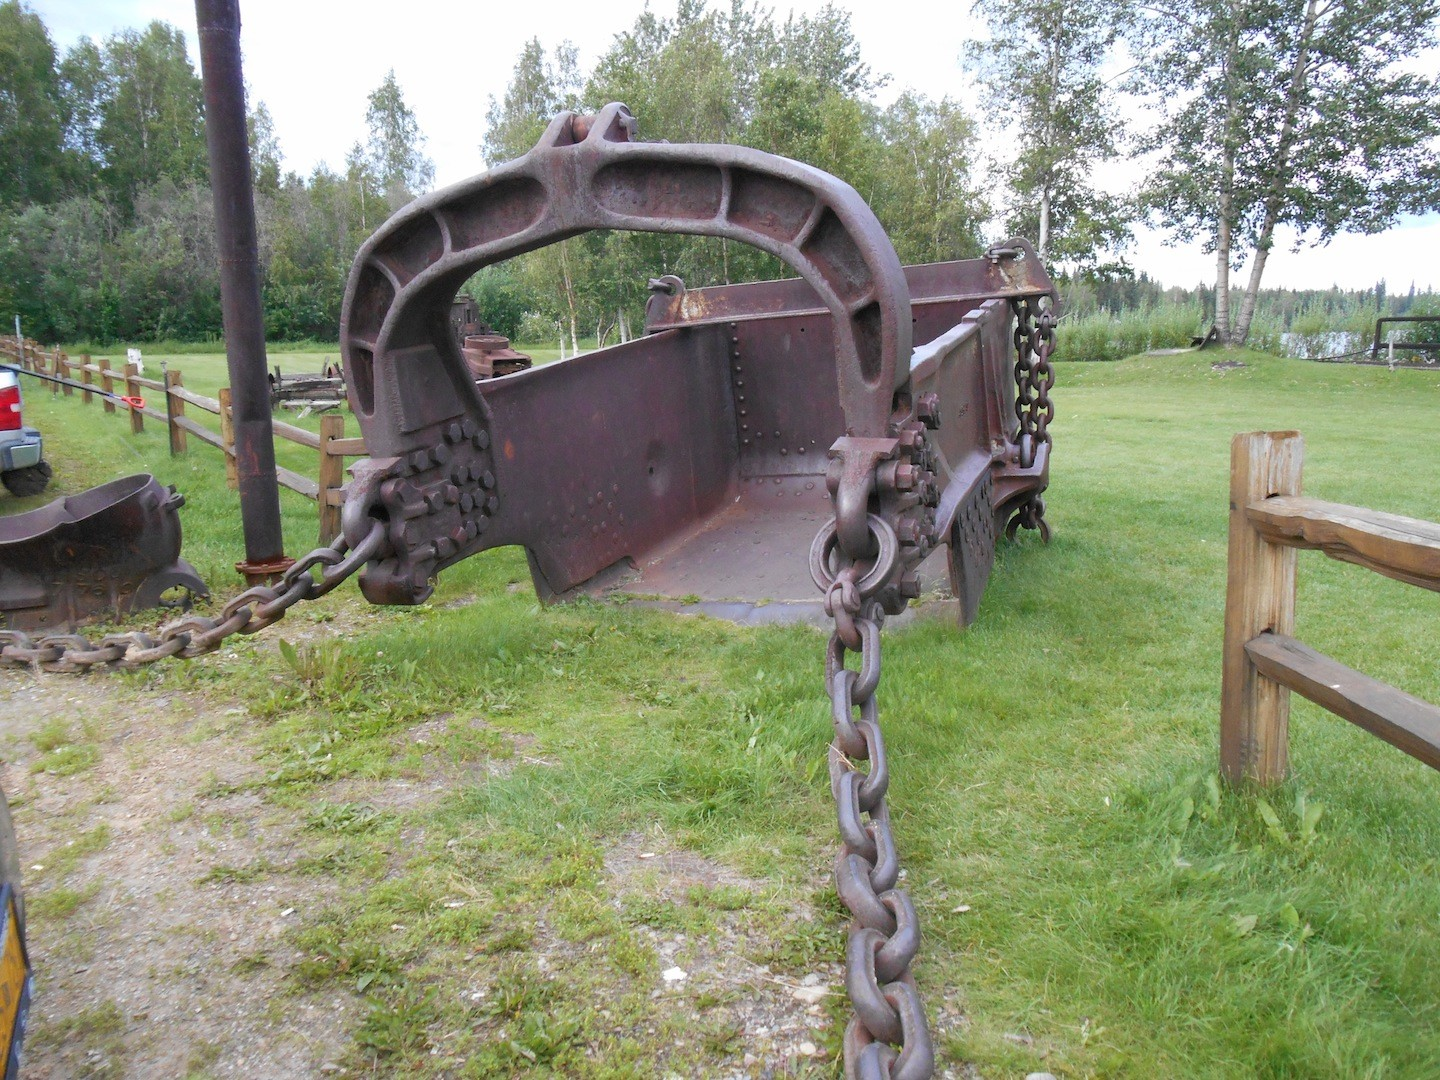 Dredge buckets like this one from Dredge #10 in Cripple Creek, Alaska, were used to efficiently work the placers.